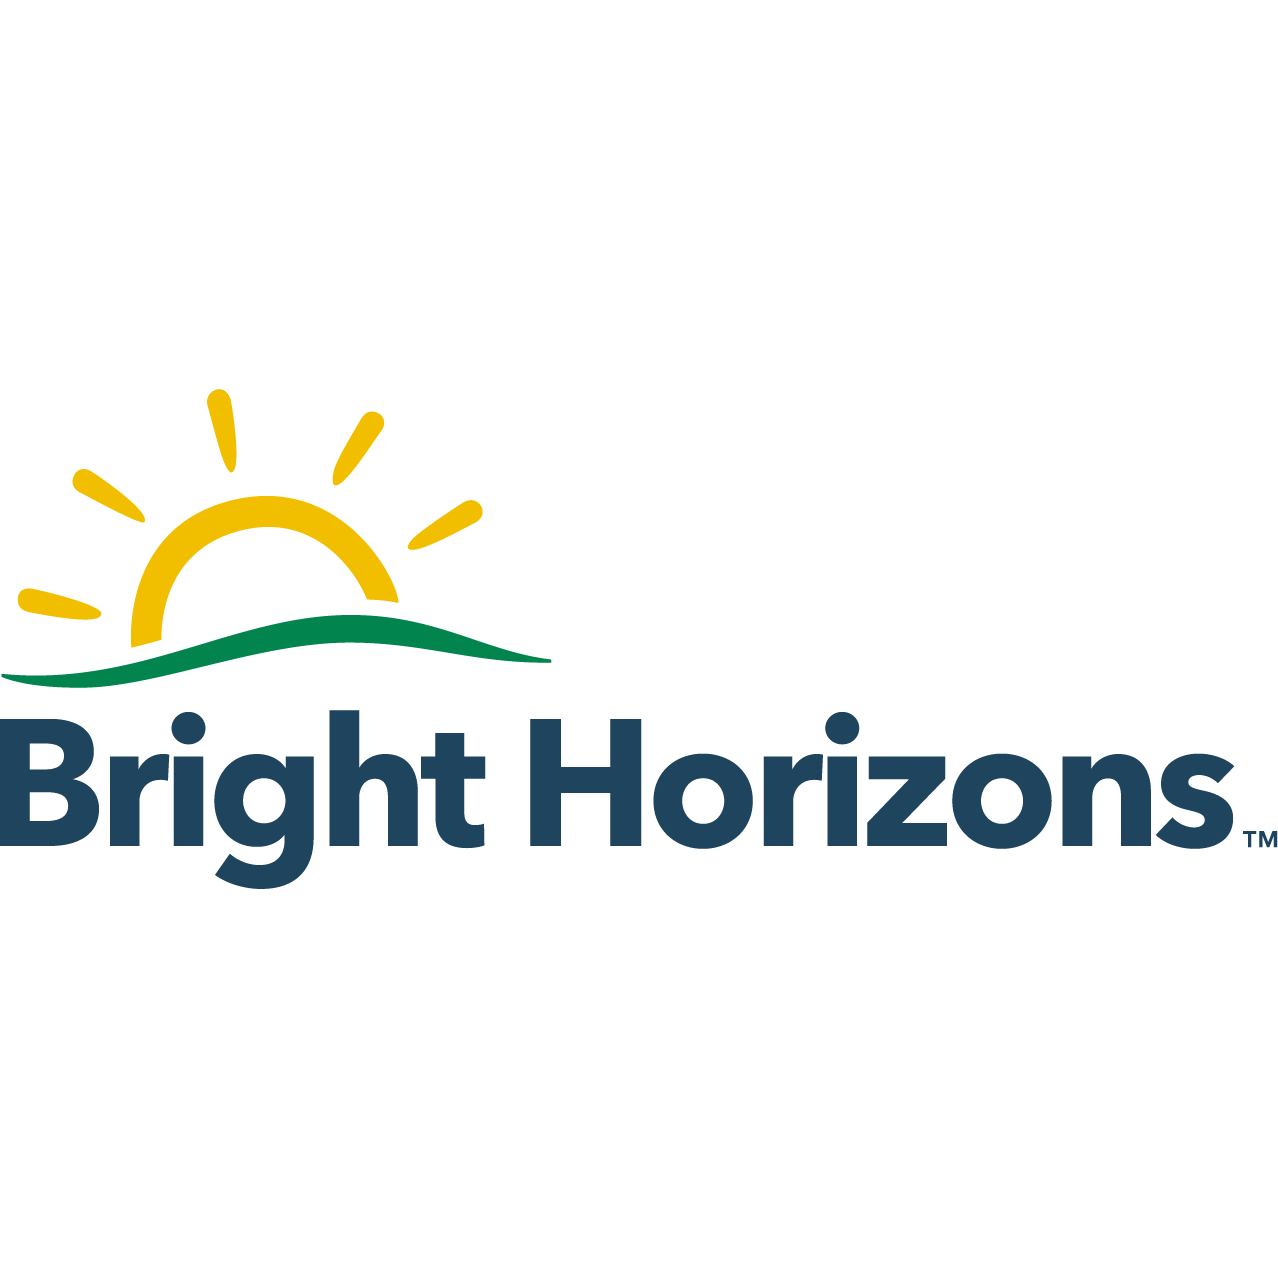 Bright Horizons Teddington Day Nursery and Preschool - Teddington, London TW11 0BU - 03333 637213 | ShowMeLocal.com